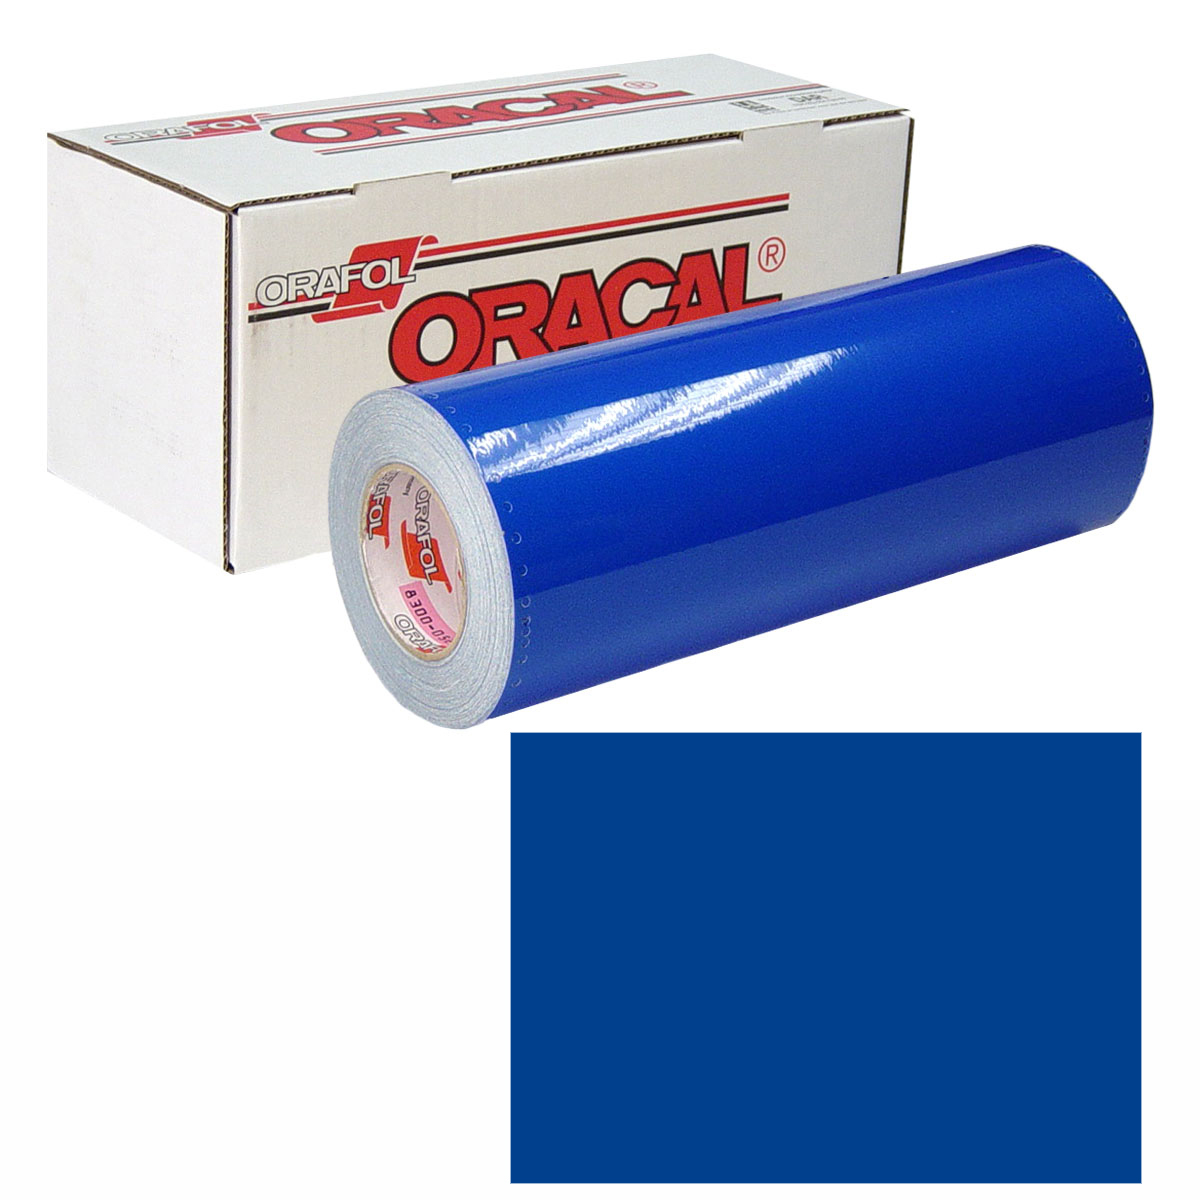 ORACAL 631 15in X 50yd 057 Traffic Blue